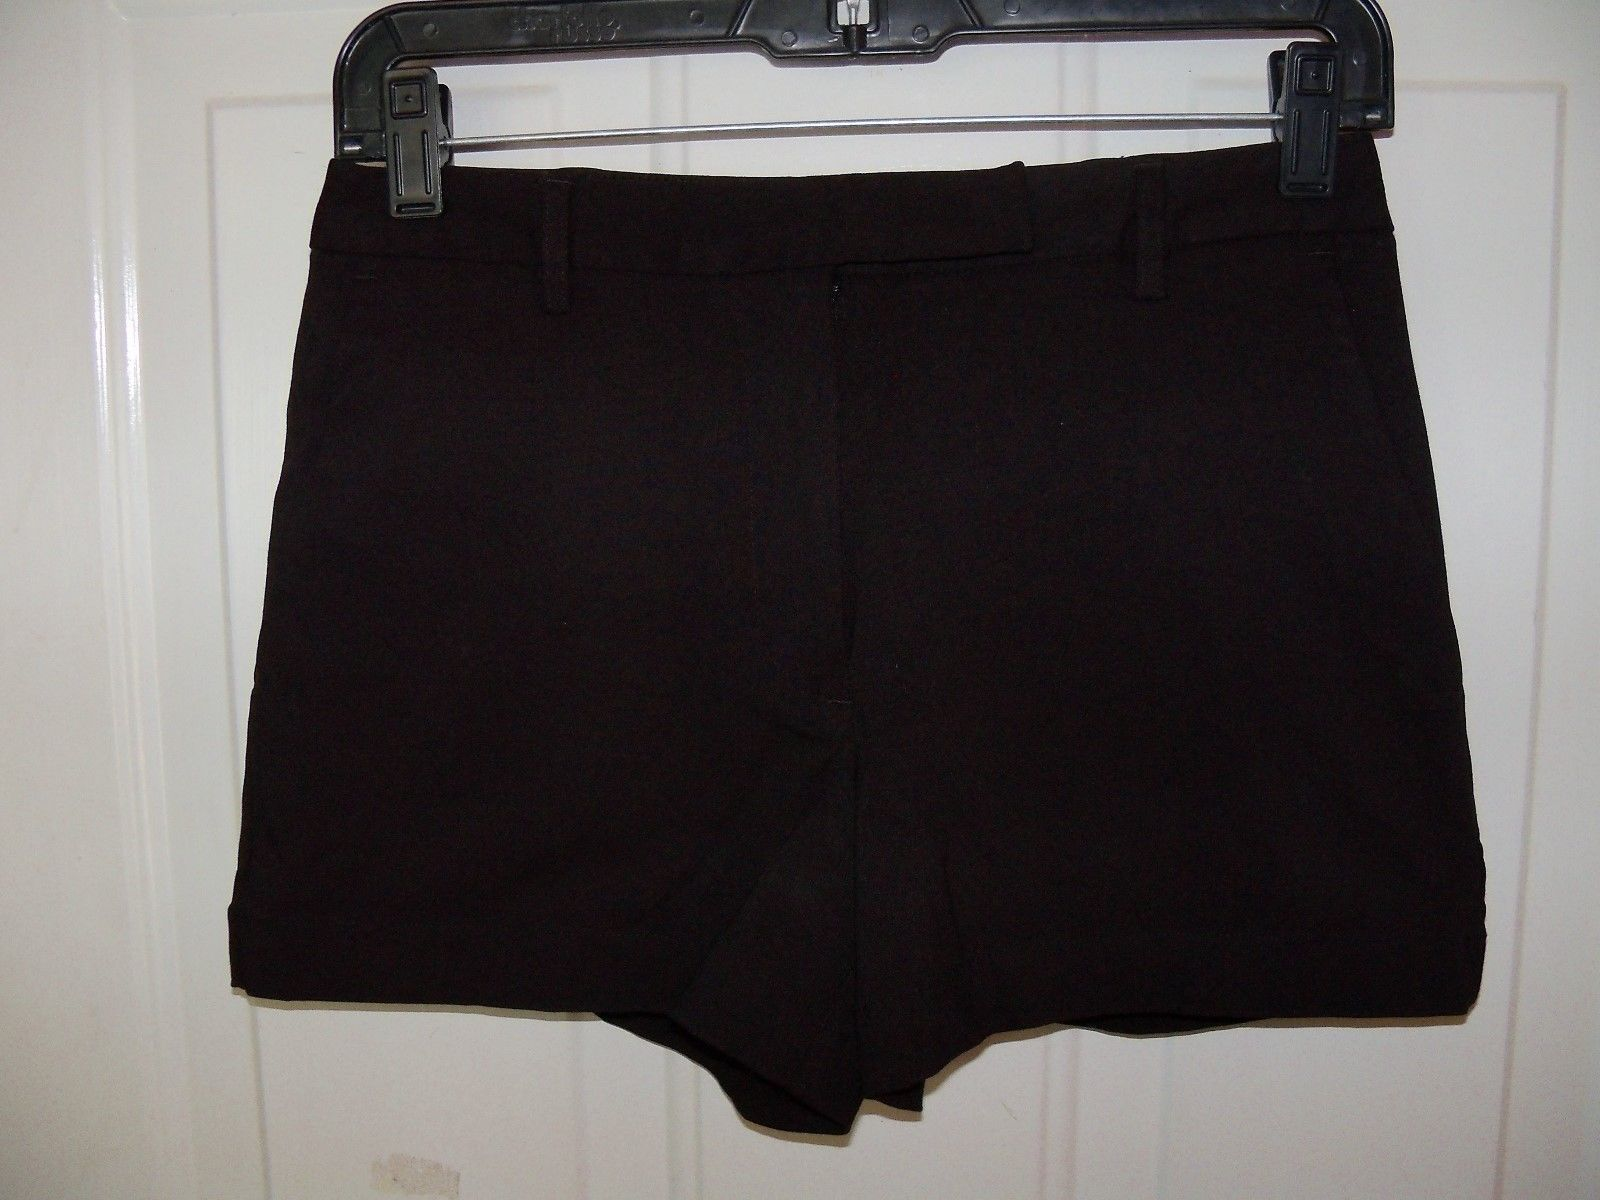 Primary image for EXPRESS BLACK SHORTS SIZE 3/4 Women's NWOT